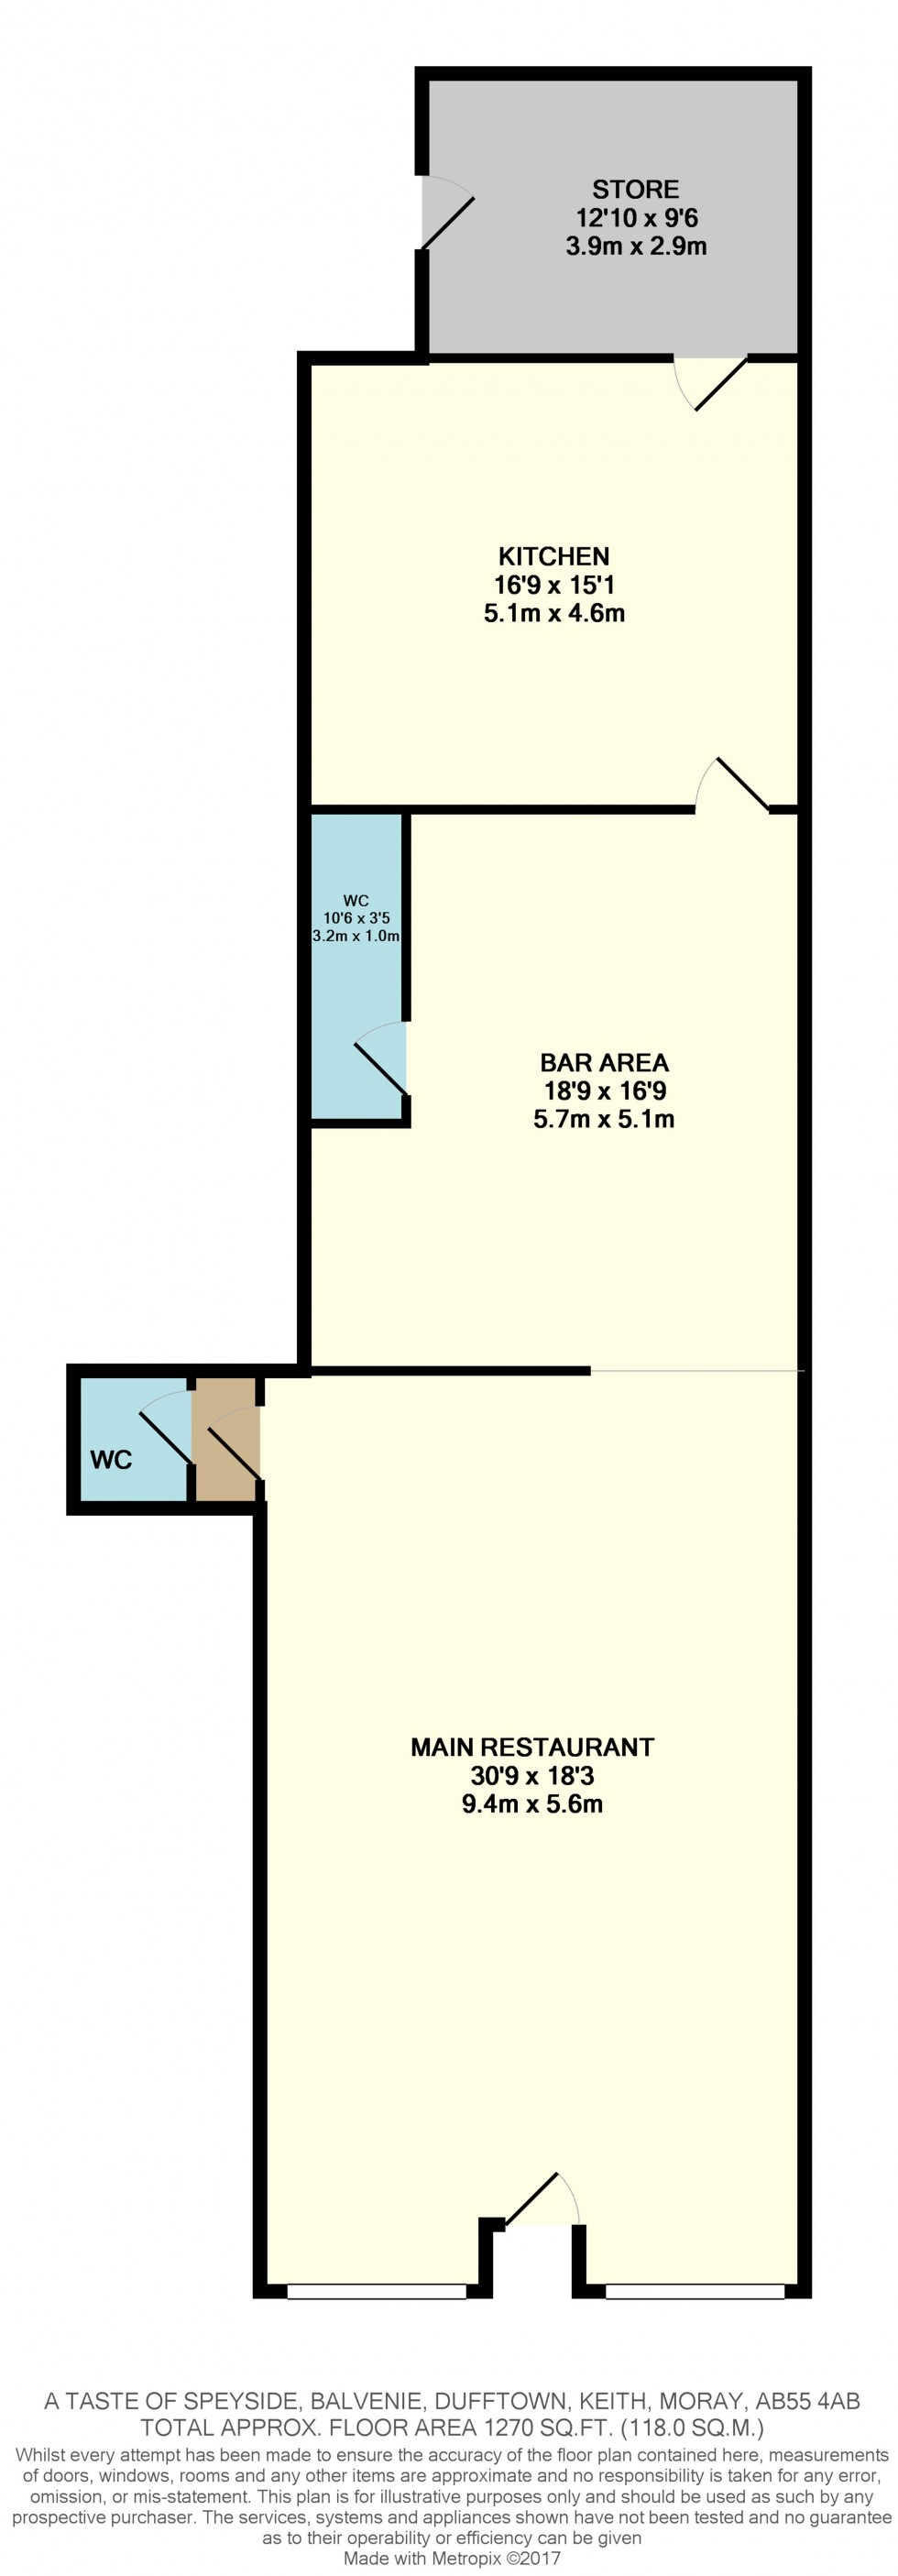 Floorplan for Balvenie Street, Dufftown, Keith, Moray